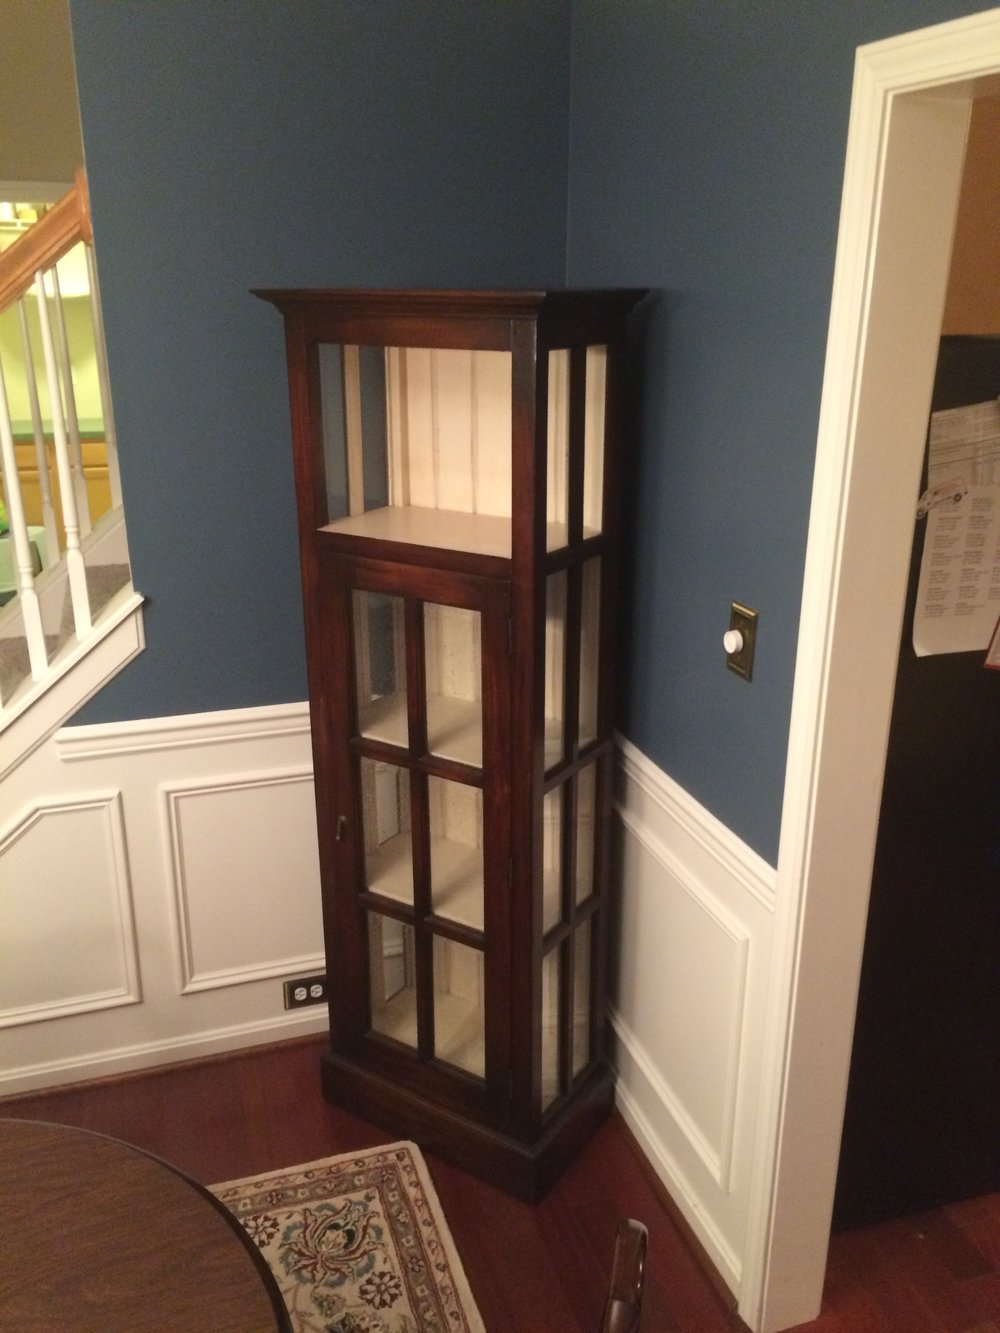 21816 Cape Cod Bookcase w/ Door